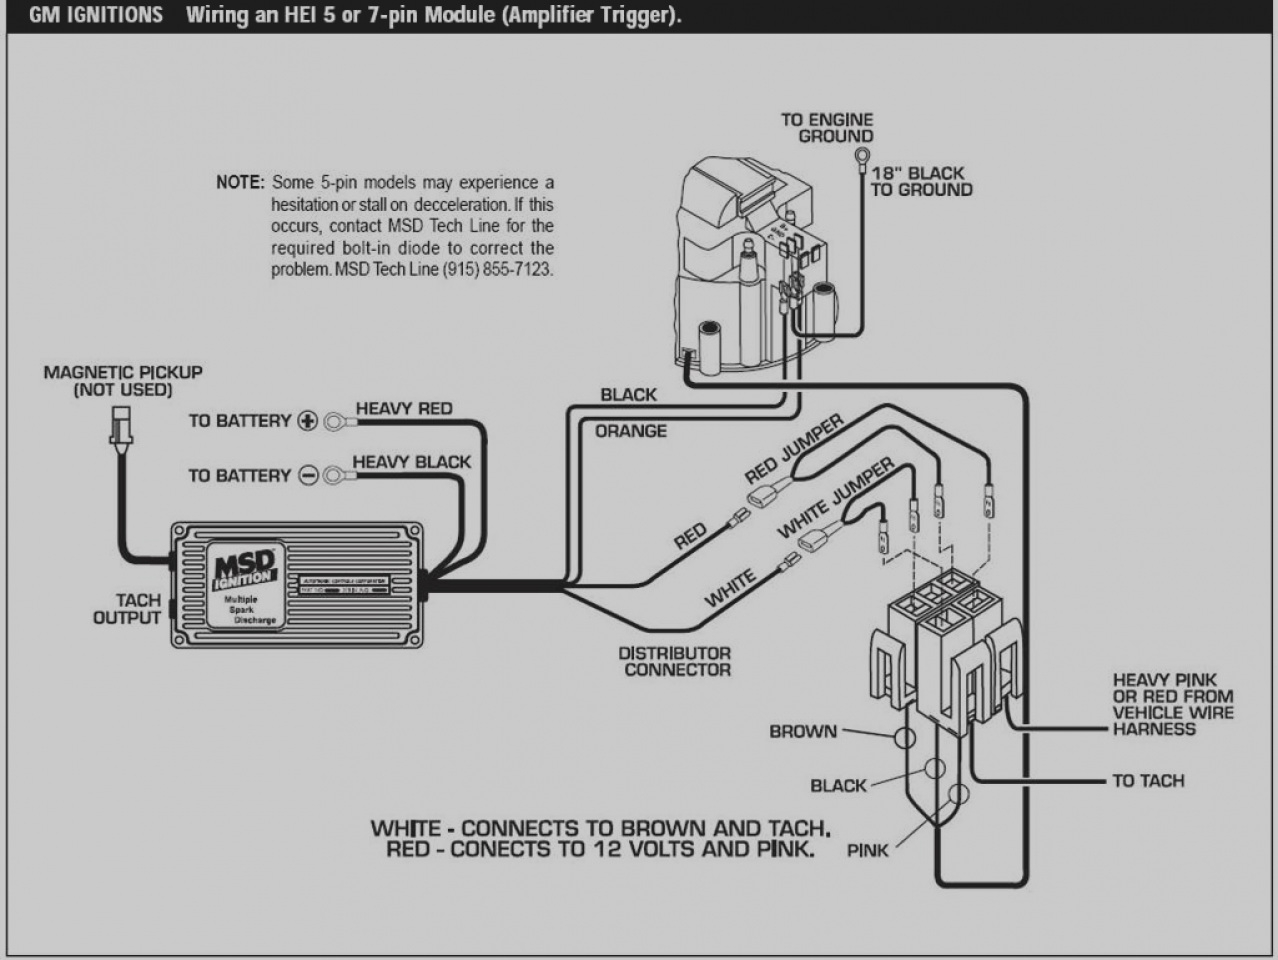 msd 6al hei wiring diagram Download-27 Wiring Diagram For A Msd 6al 6Al To Hei Autoctono Me 11-l